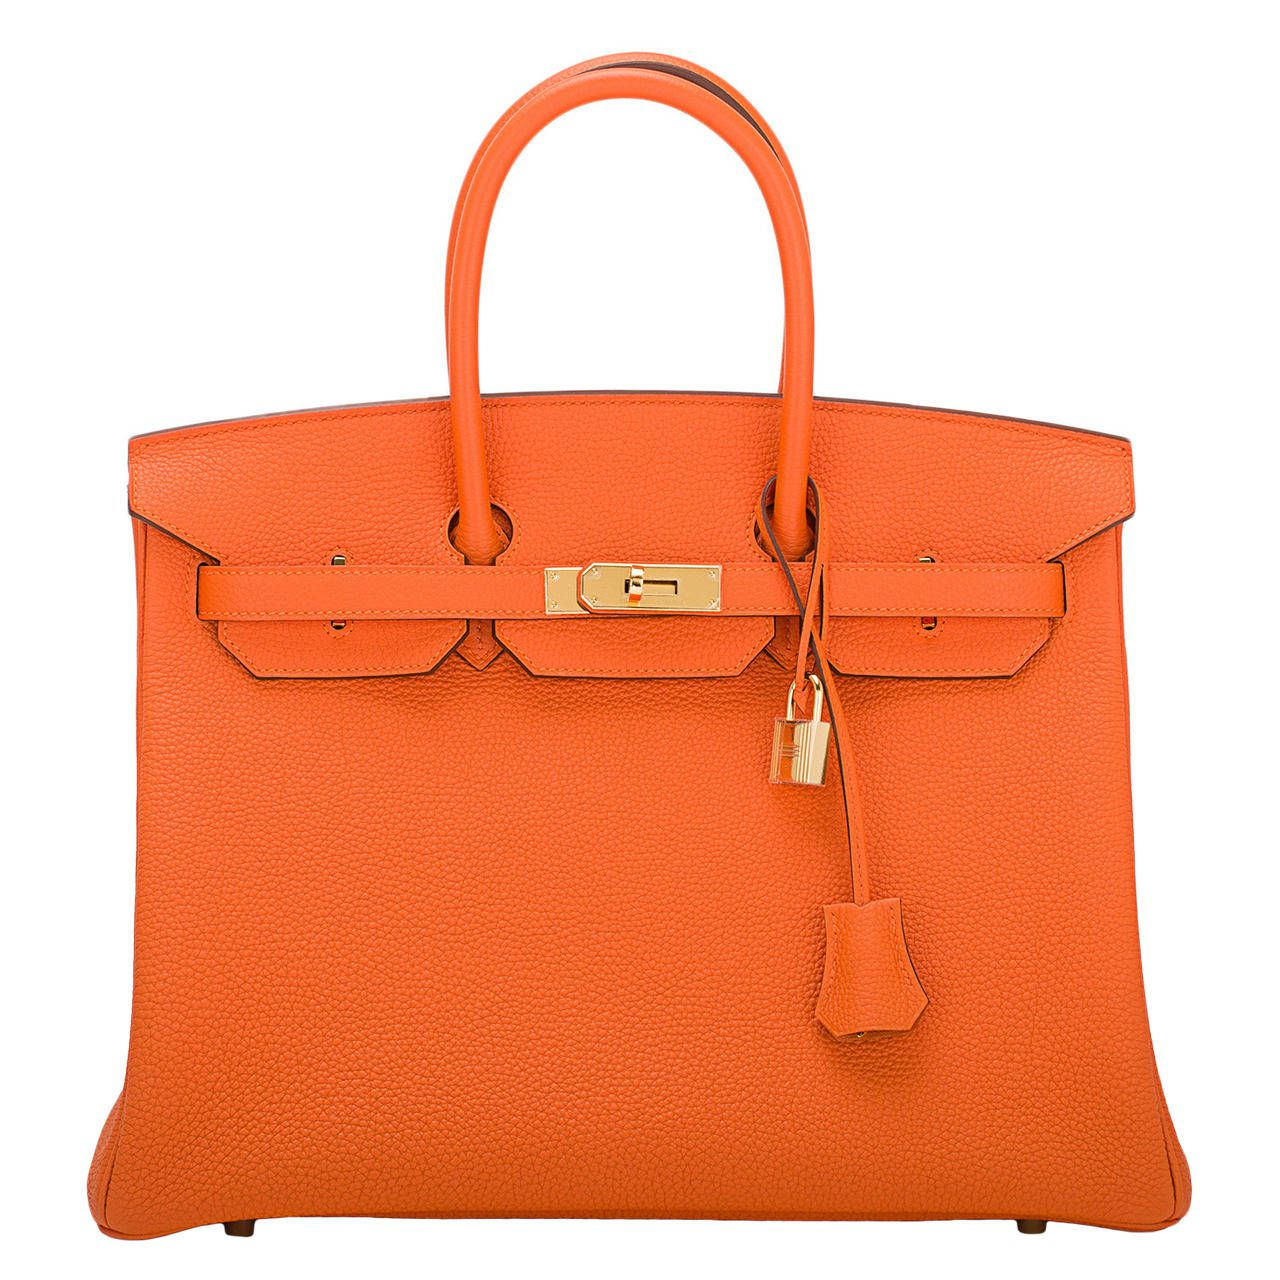 Hermes Bags – Where to Buy, Prices, Models